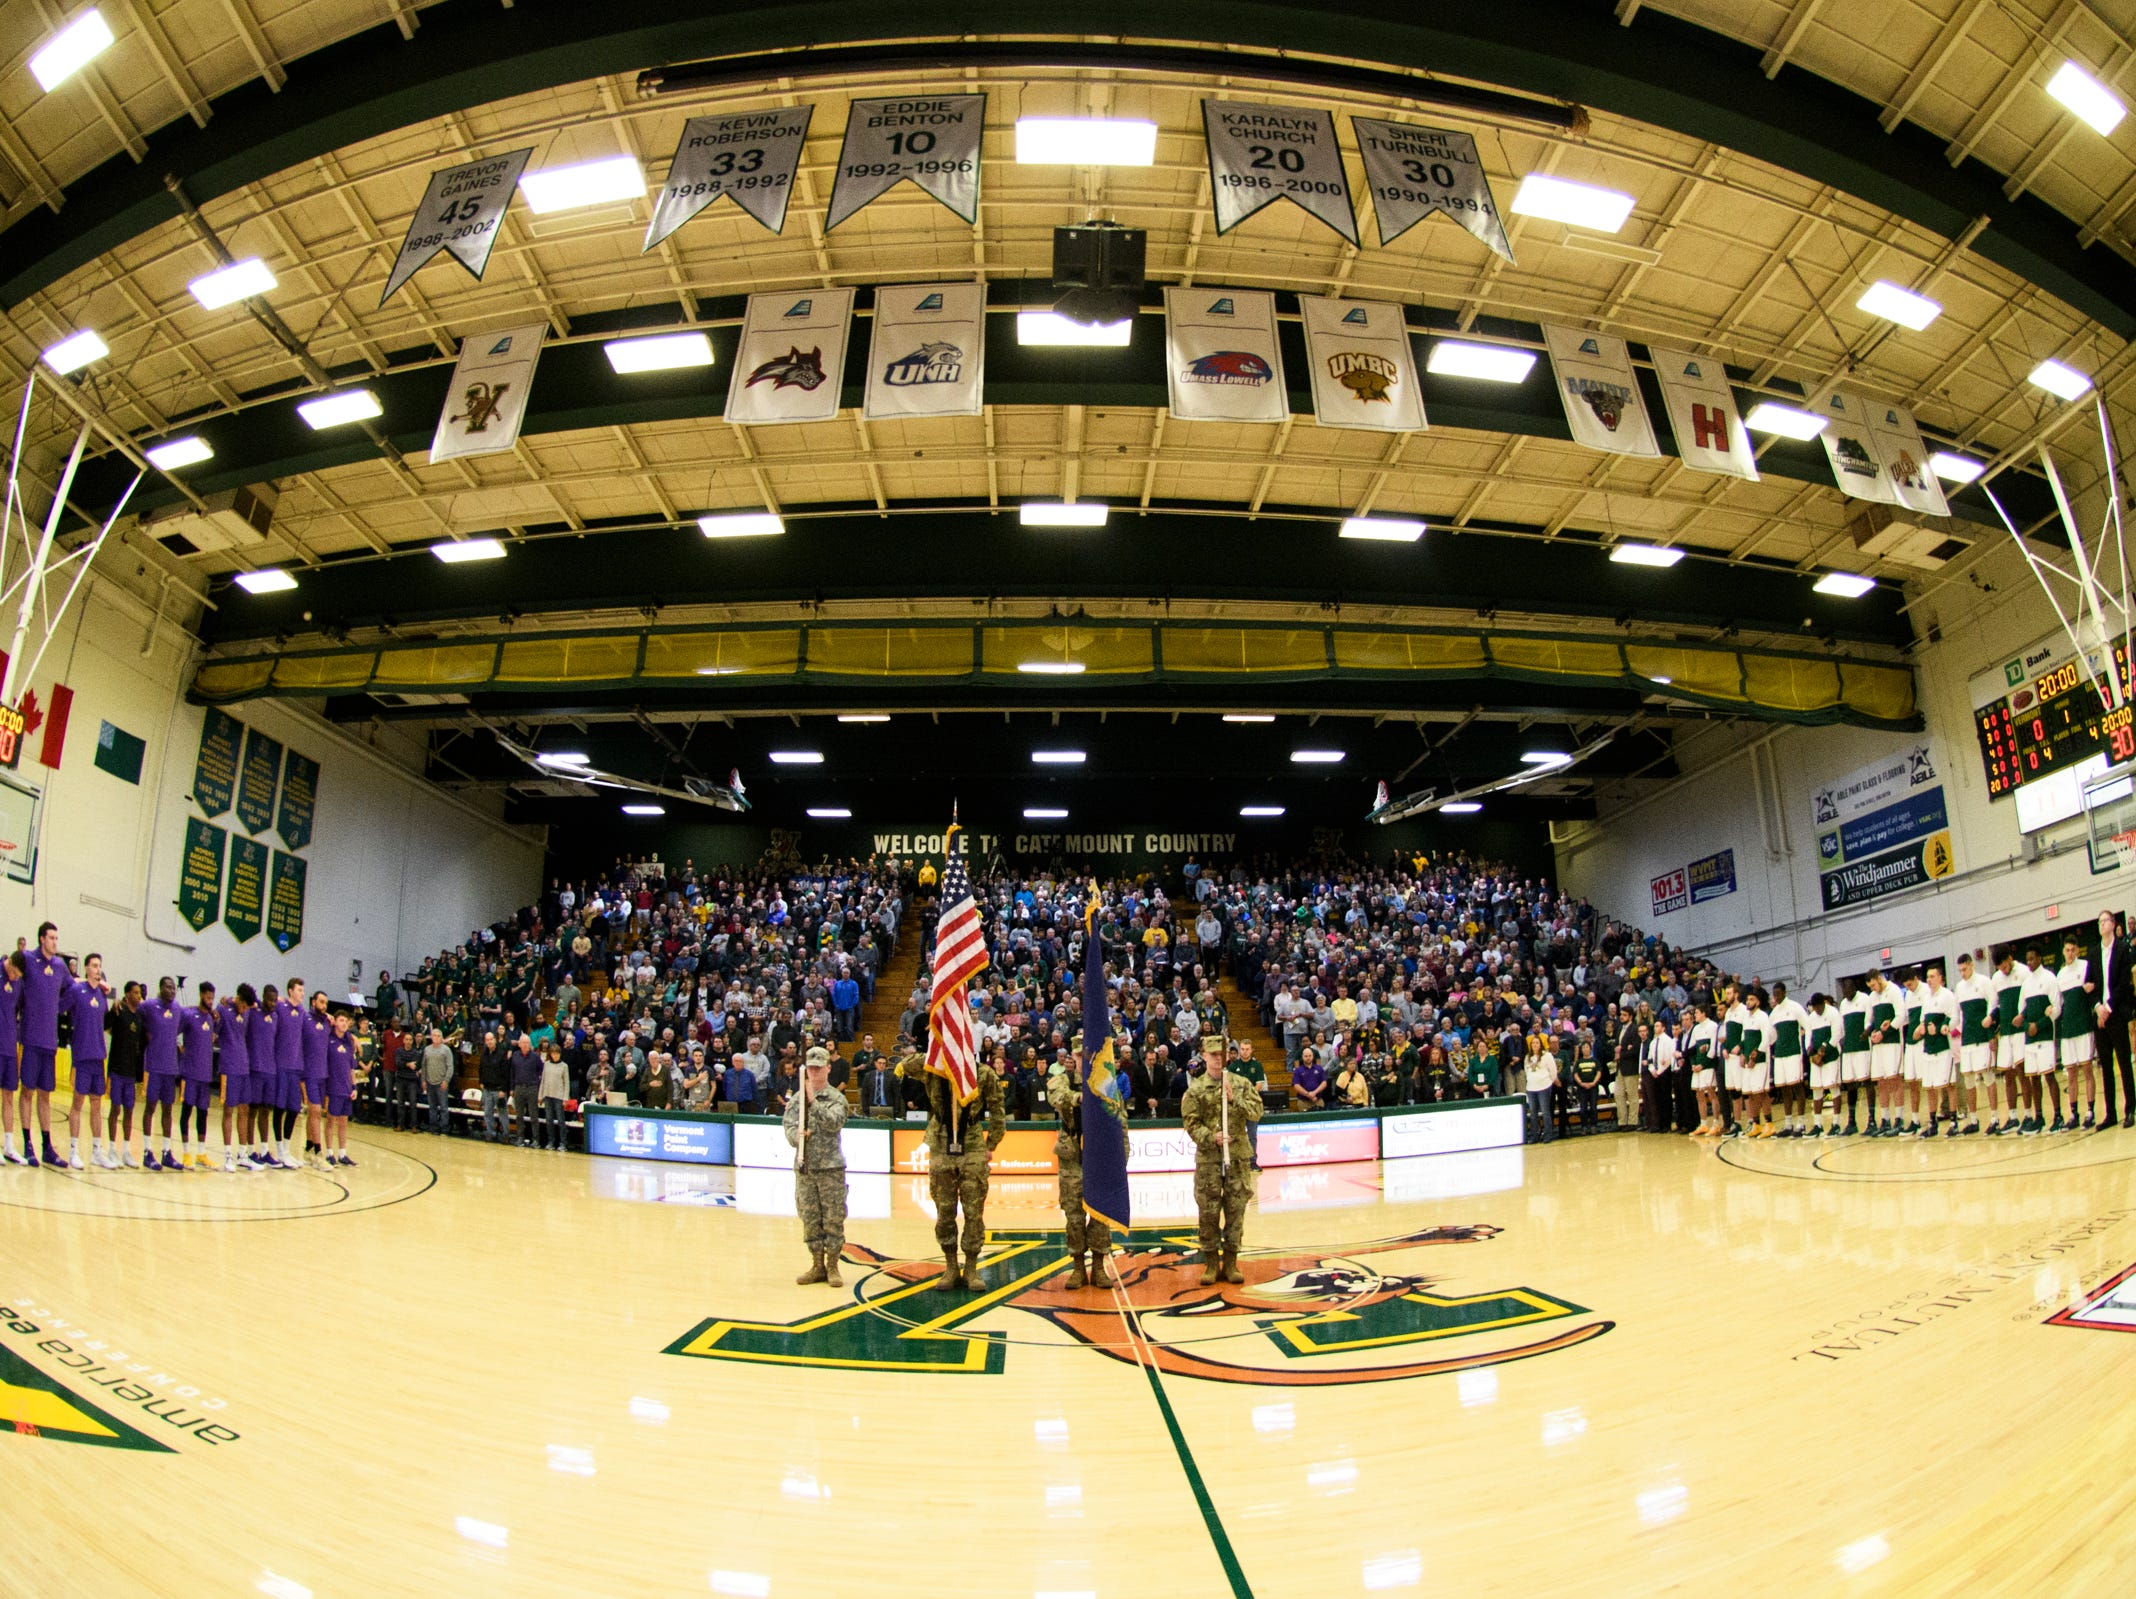 The color guard takes the court during the playing of the National Anthem in the men's basketball game between the Albany Great Danes and the Vermont Catamounts at Patrick Gym on Saturday February 9, 2019 in Burlington, Vermont.